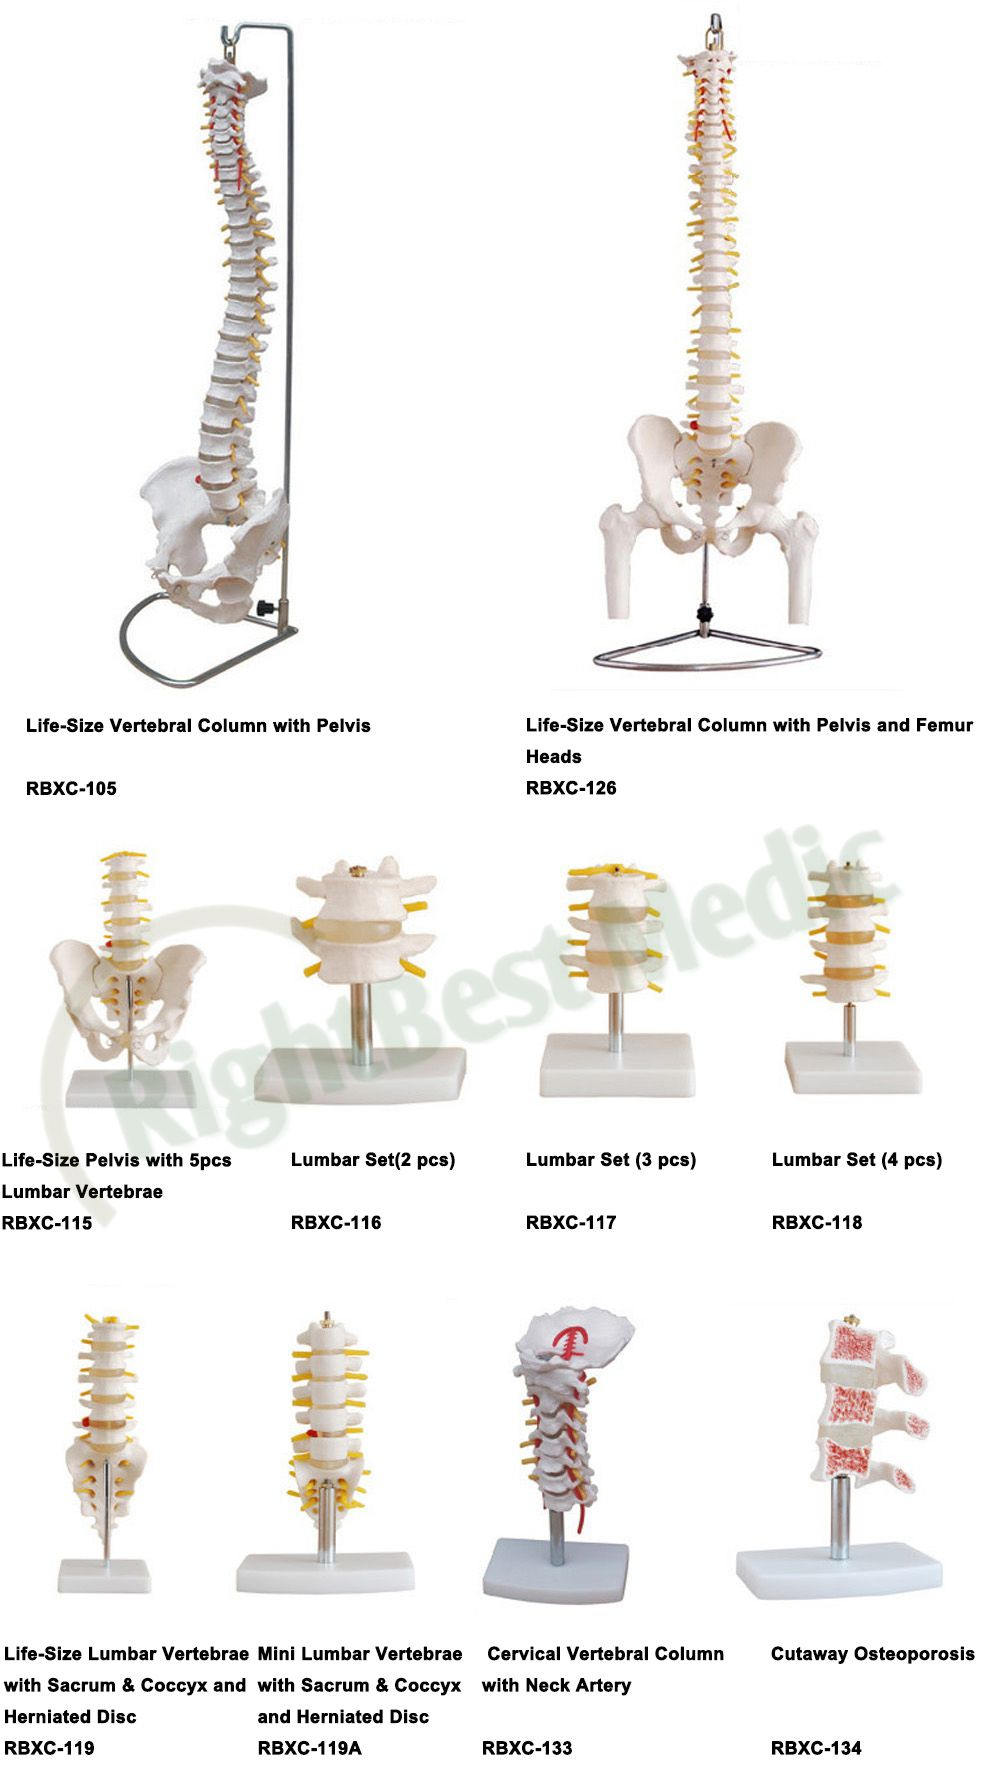 Lumbar Vertebrae With Sacrum Coccyx And Herniation Disc Education